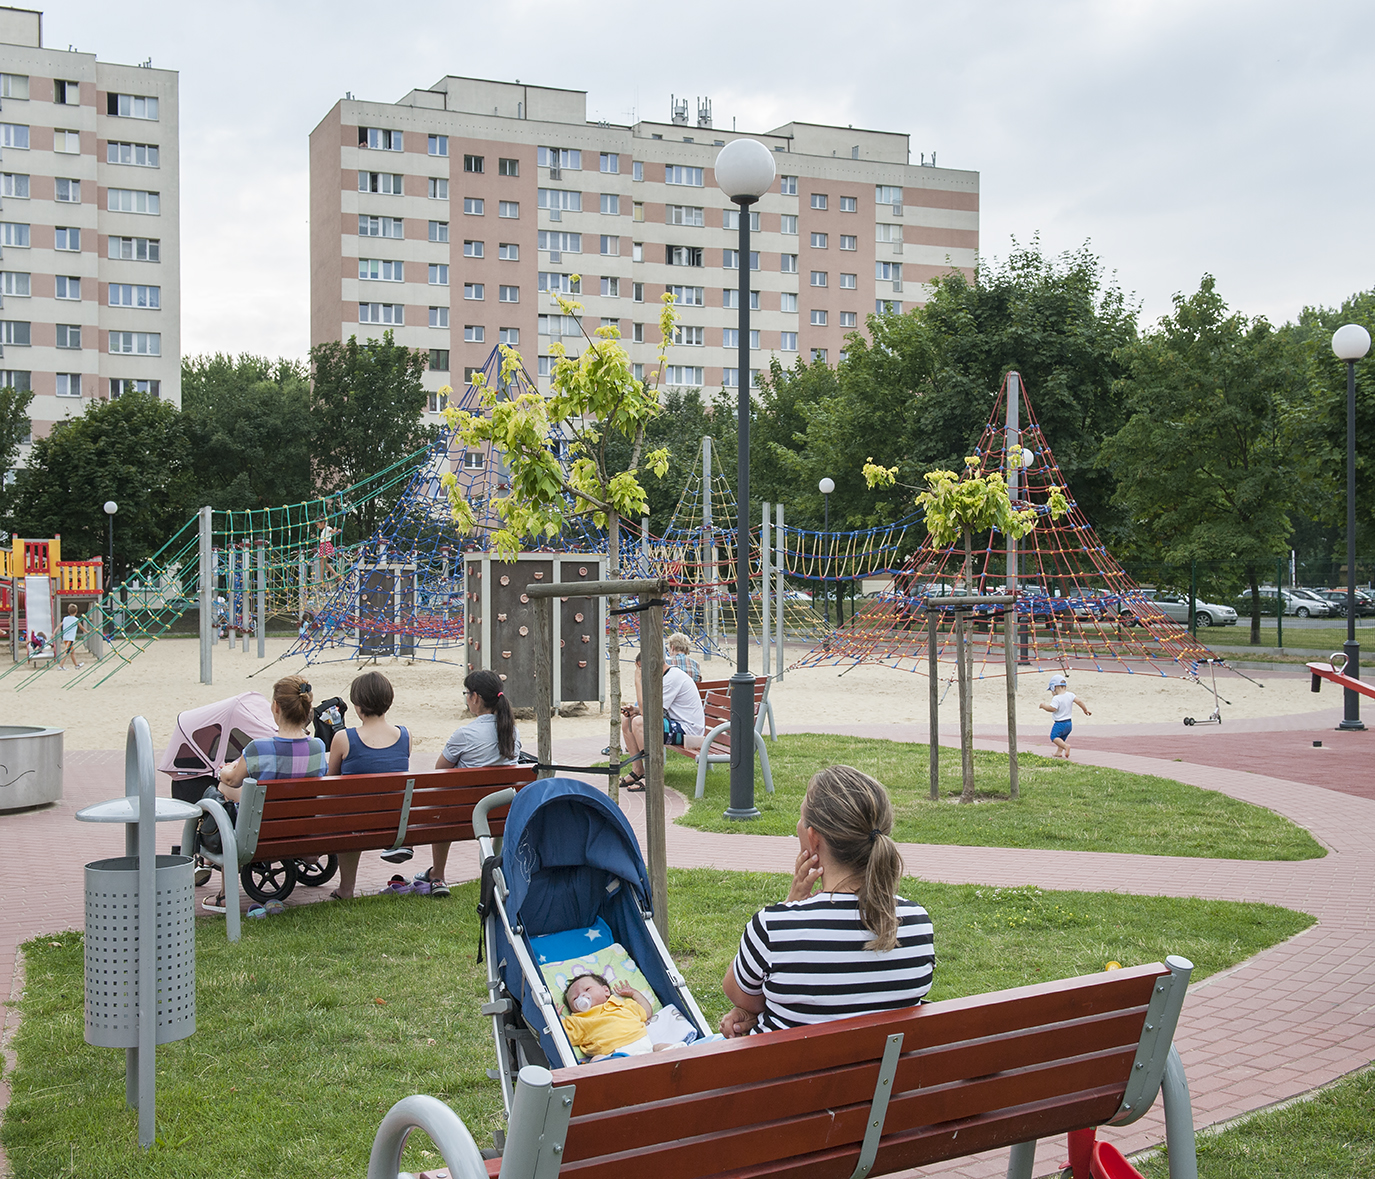 Katarzyna with her doll and children in the play park. Most of the time when Katarzyna takes her kids out the doll comes too. People approach her to admire the newborn baby. Not being able to tell the difference once told their reactions vary – from excitement to shock.